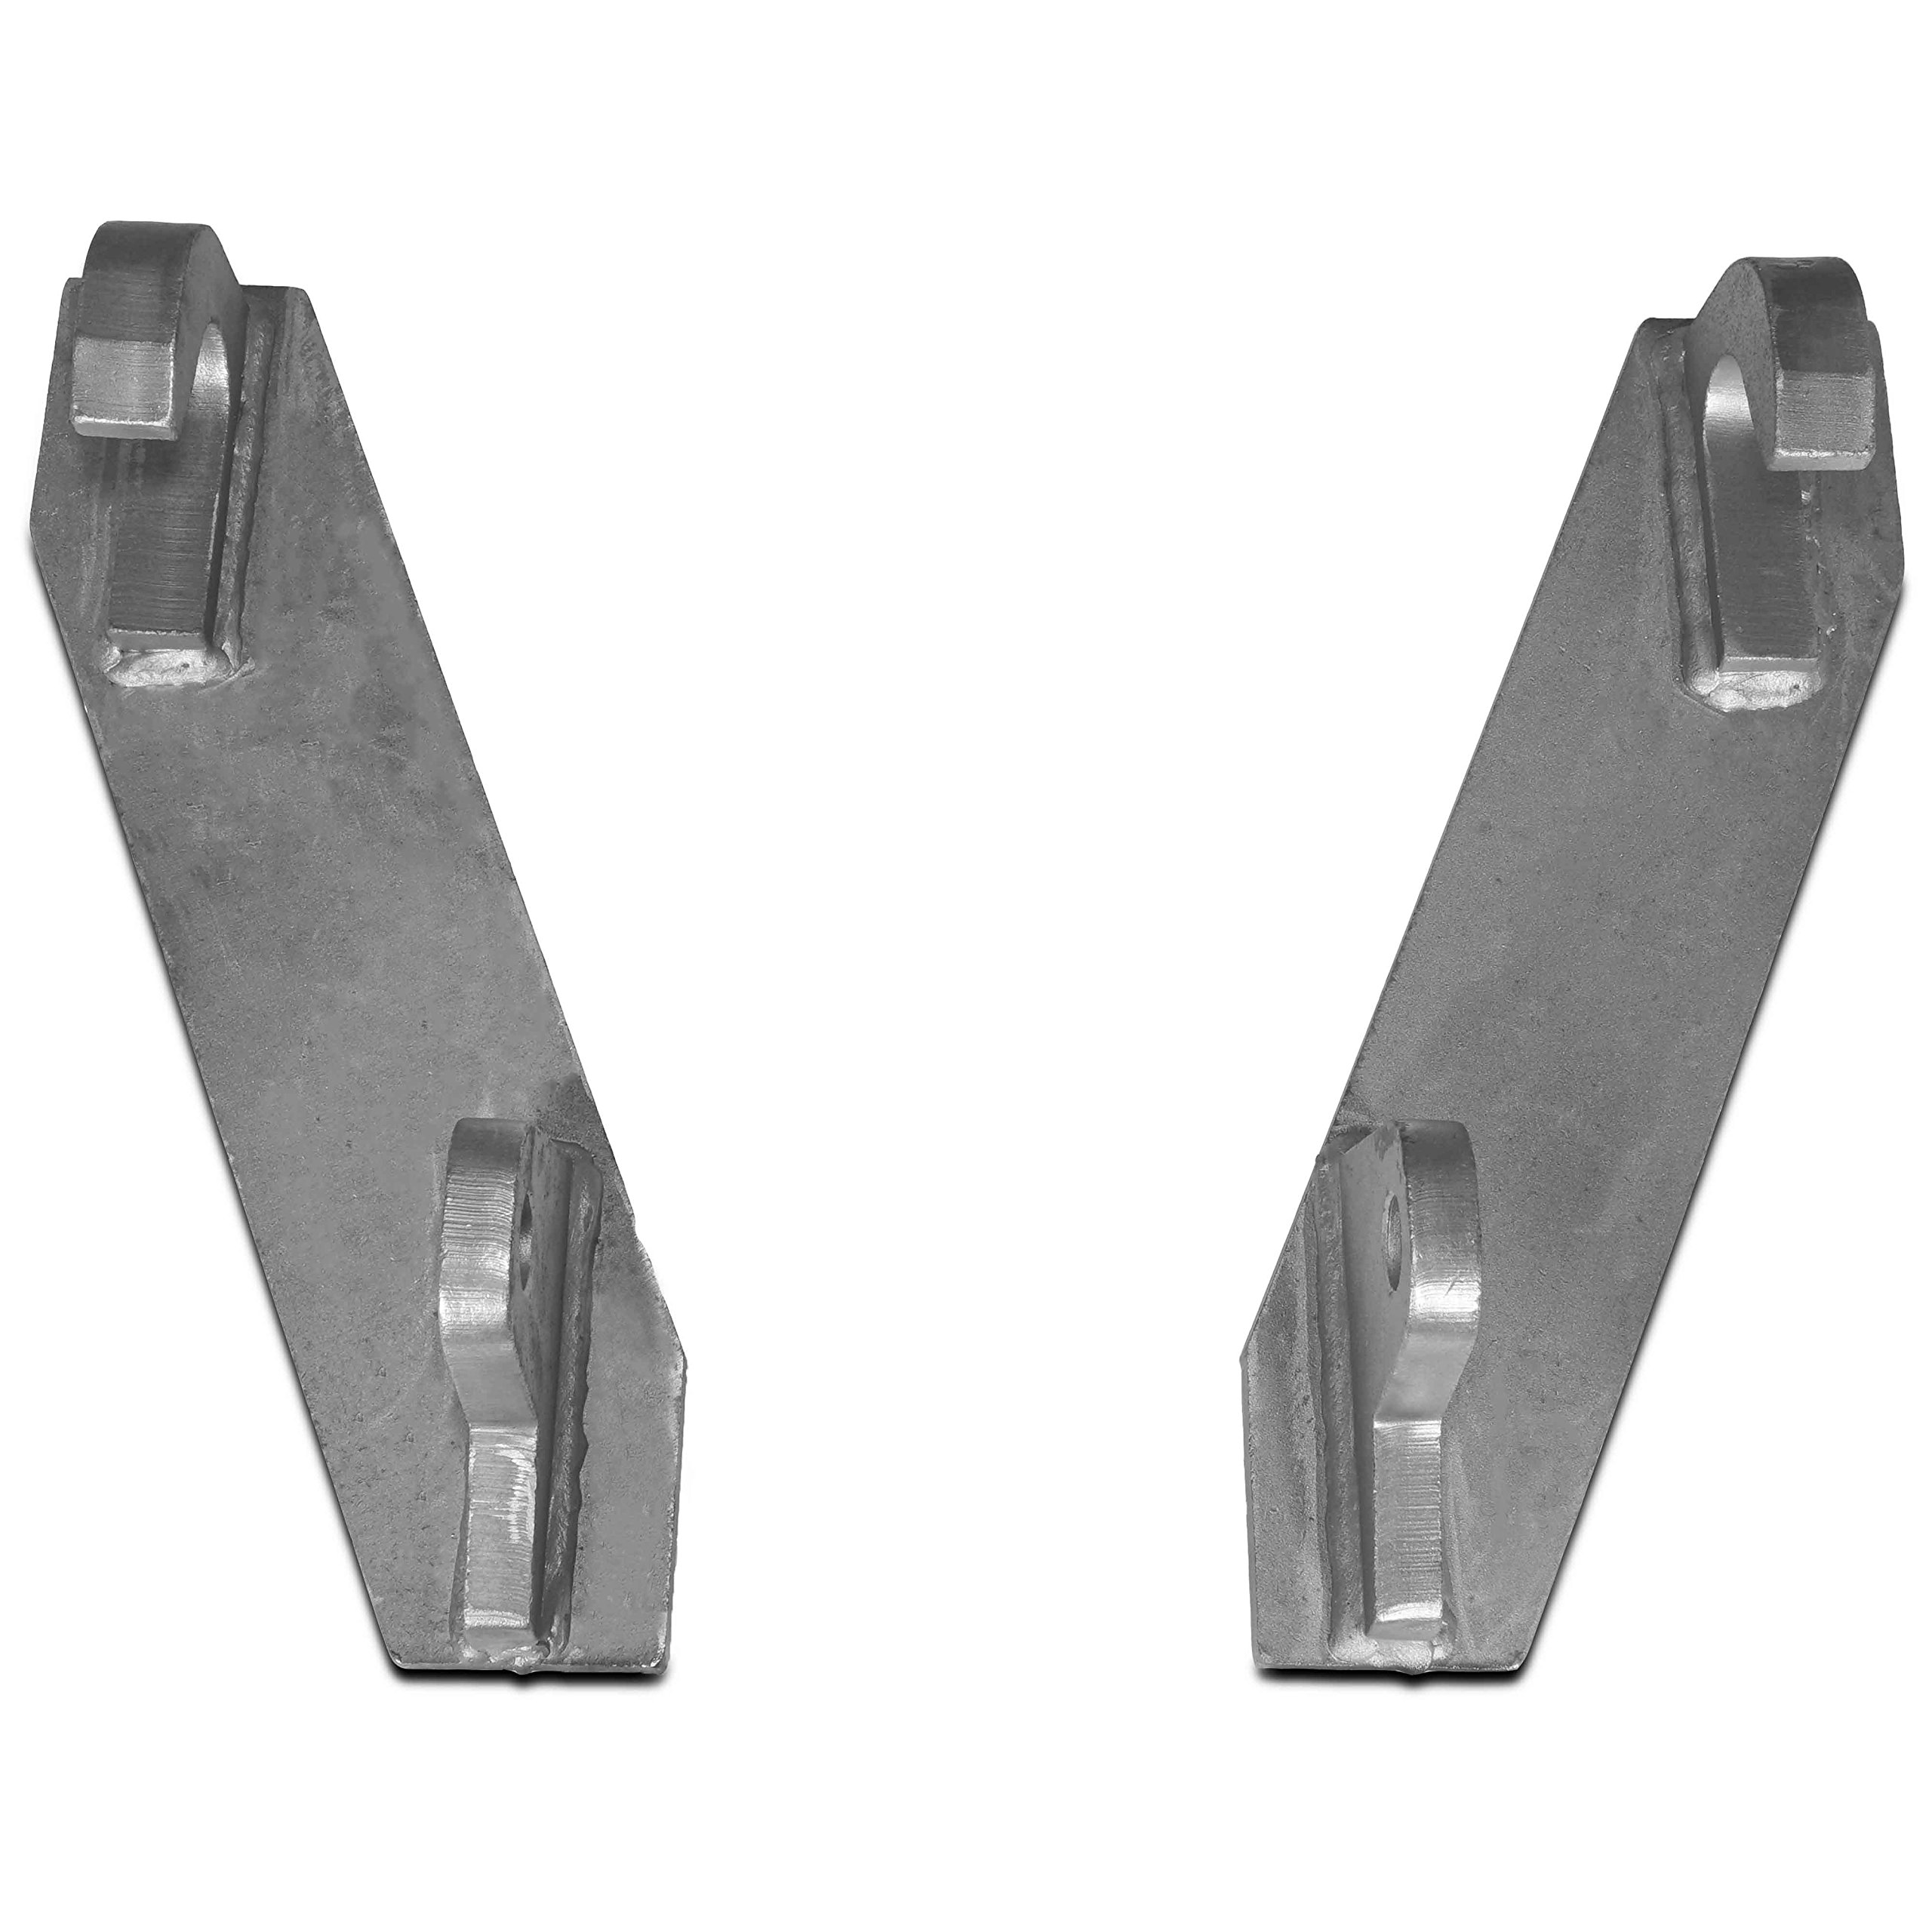 Titan Mounting Brackets made to fit John Deere Global Euro loaders by Titan Attachments